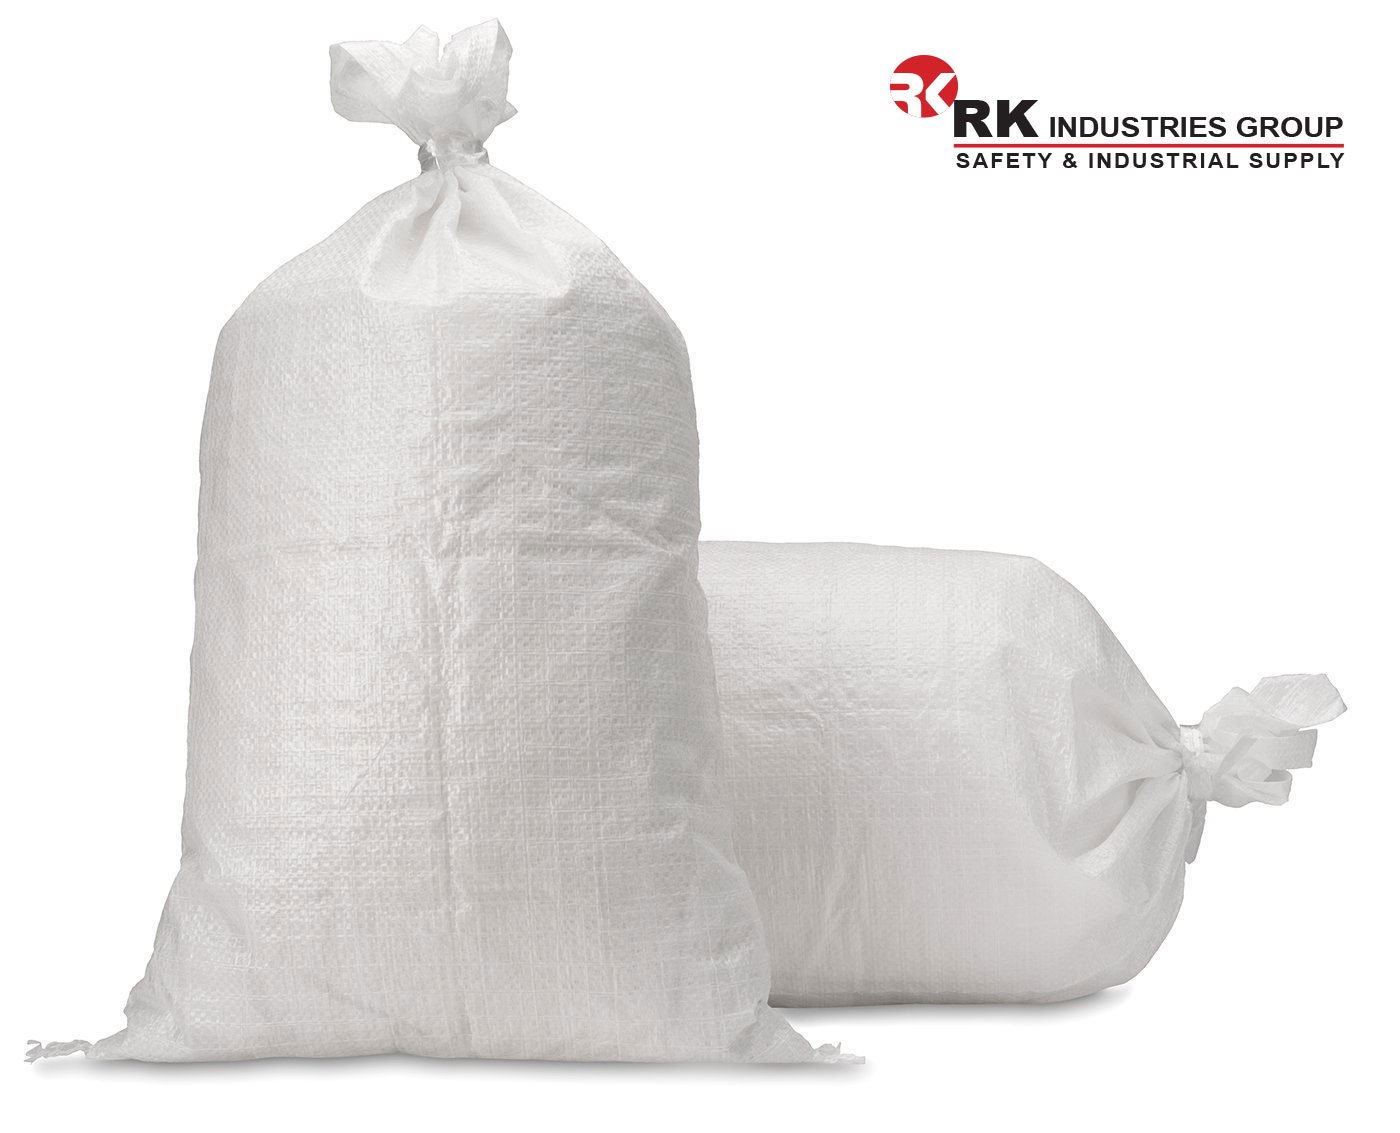 RK Sandbags Empty Woven Polypropylene Sand Bags with Built-in Ties, UV Protection, Dust Proof, Water and Oil Resistant (Size: 17x27, Pack of 100)